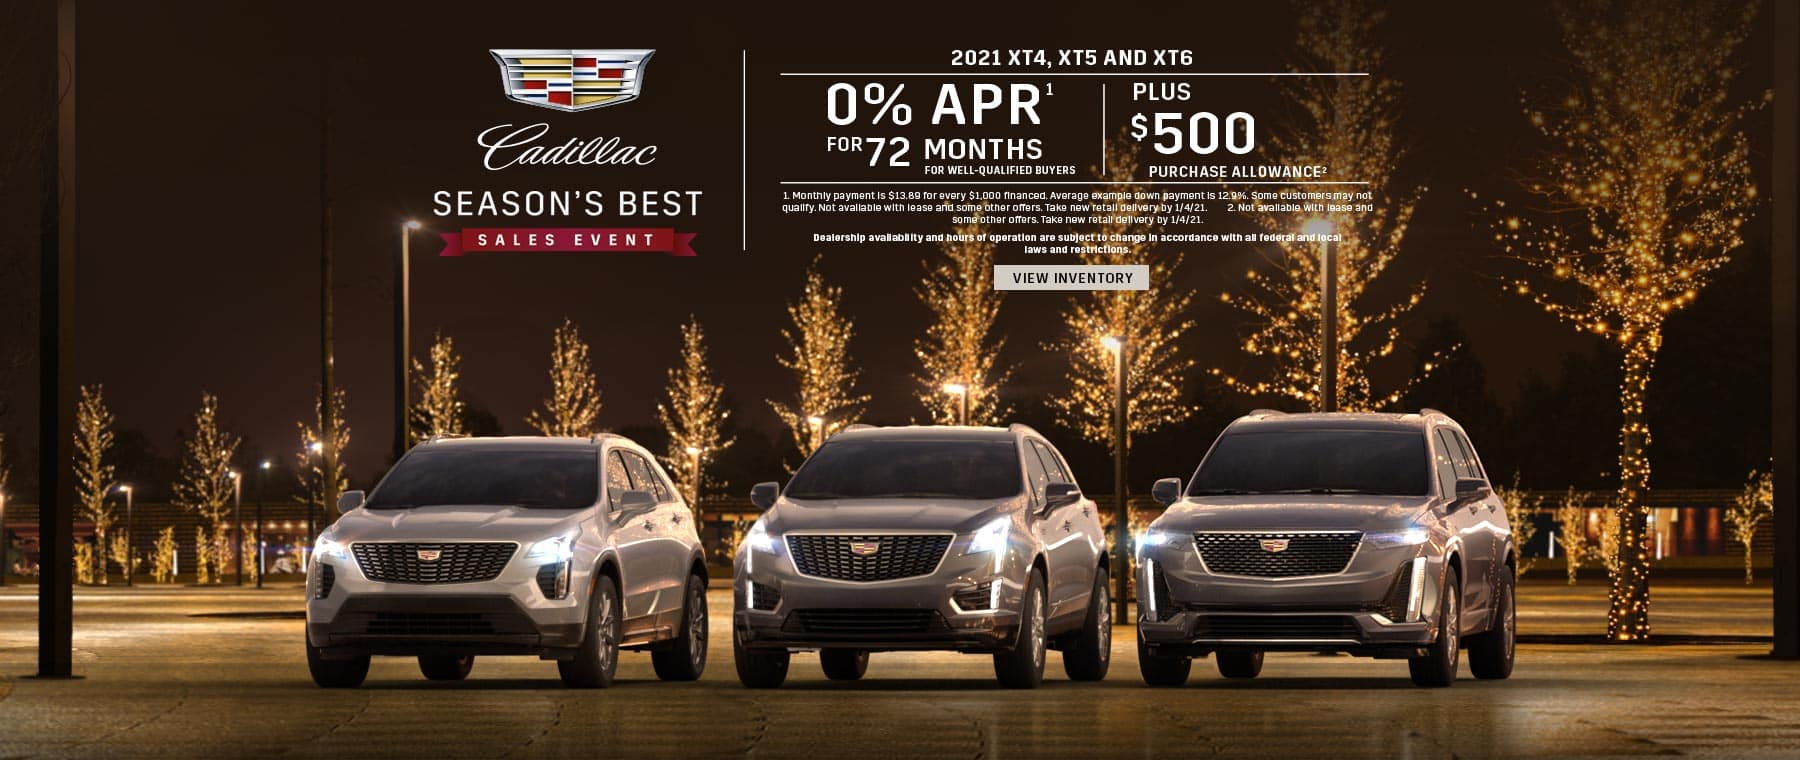 0% APR for 72 + $500 on 21MY XT4, XT5 and XT6